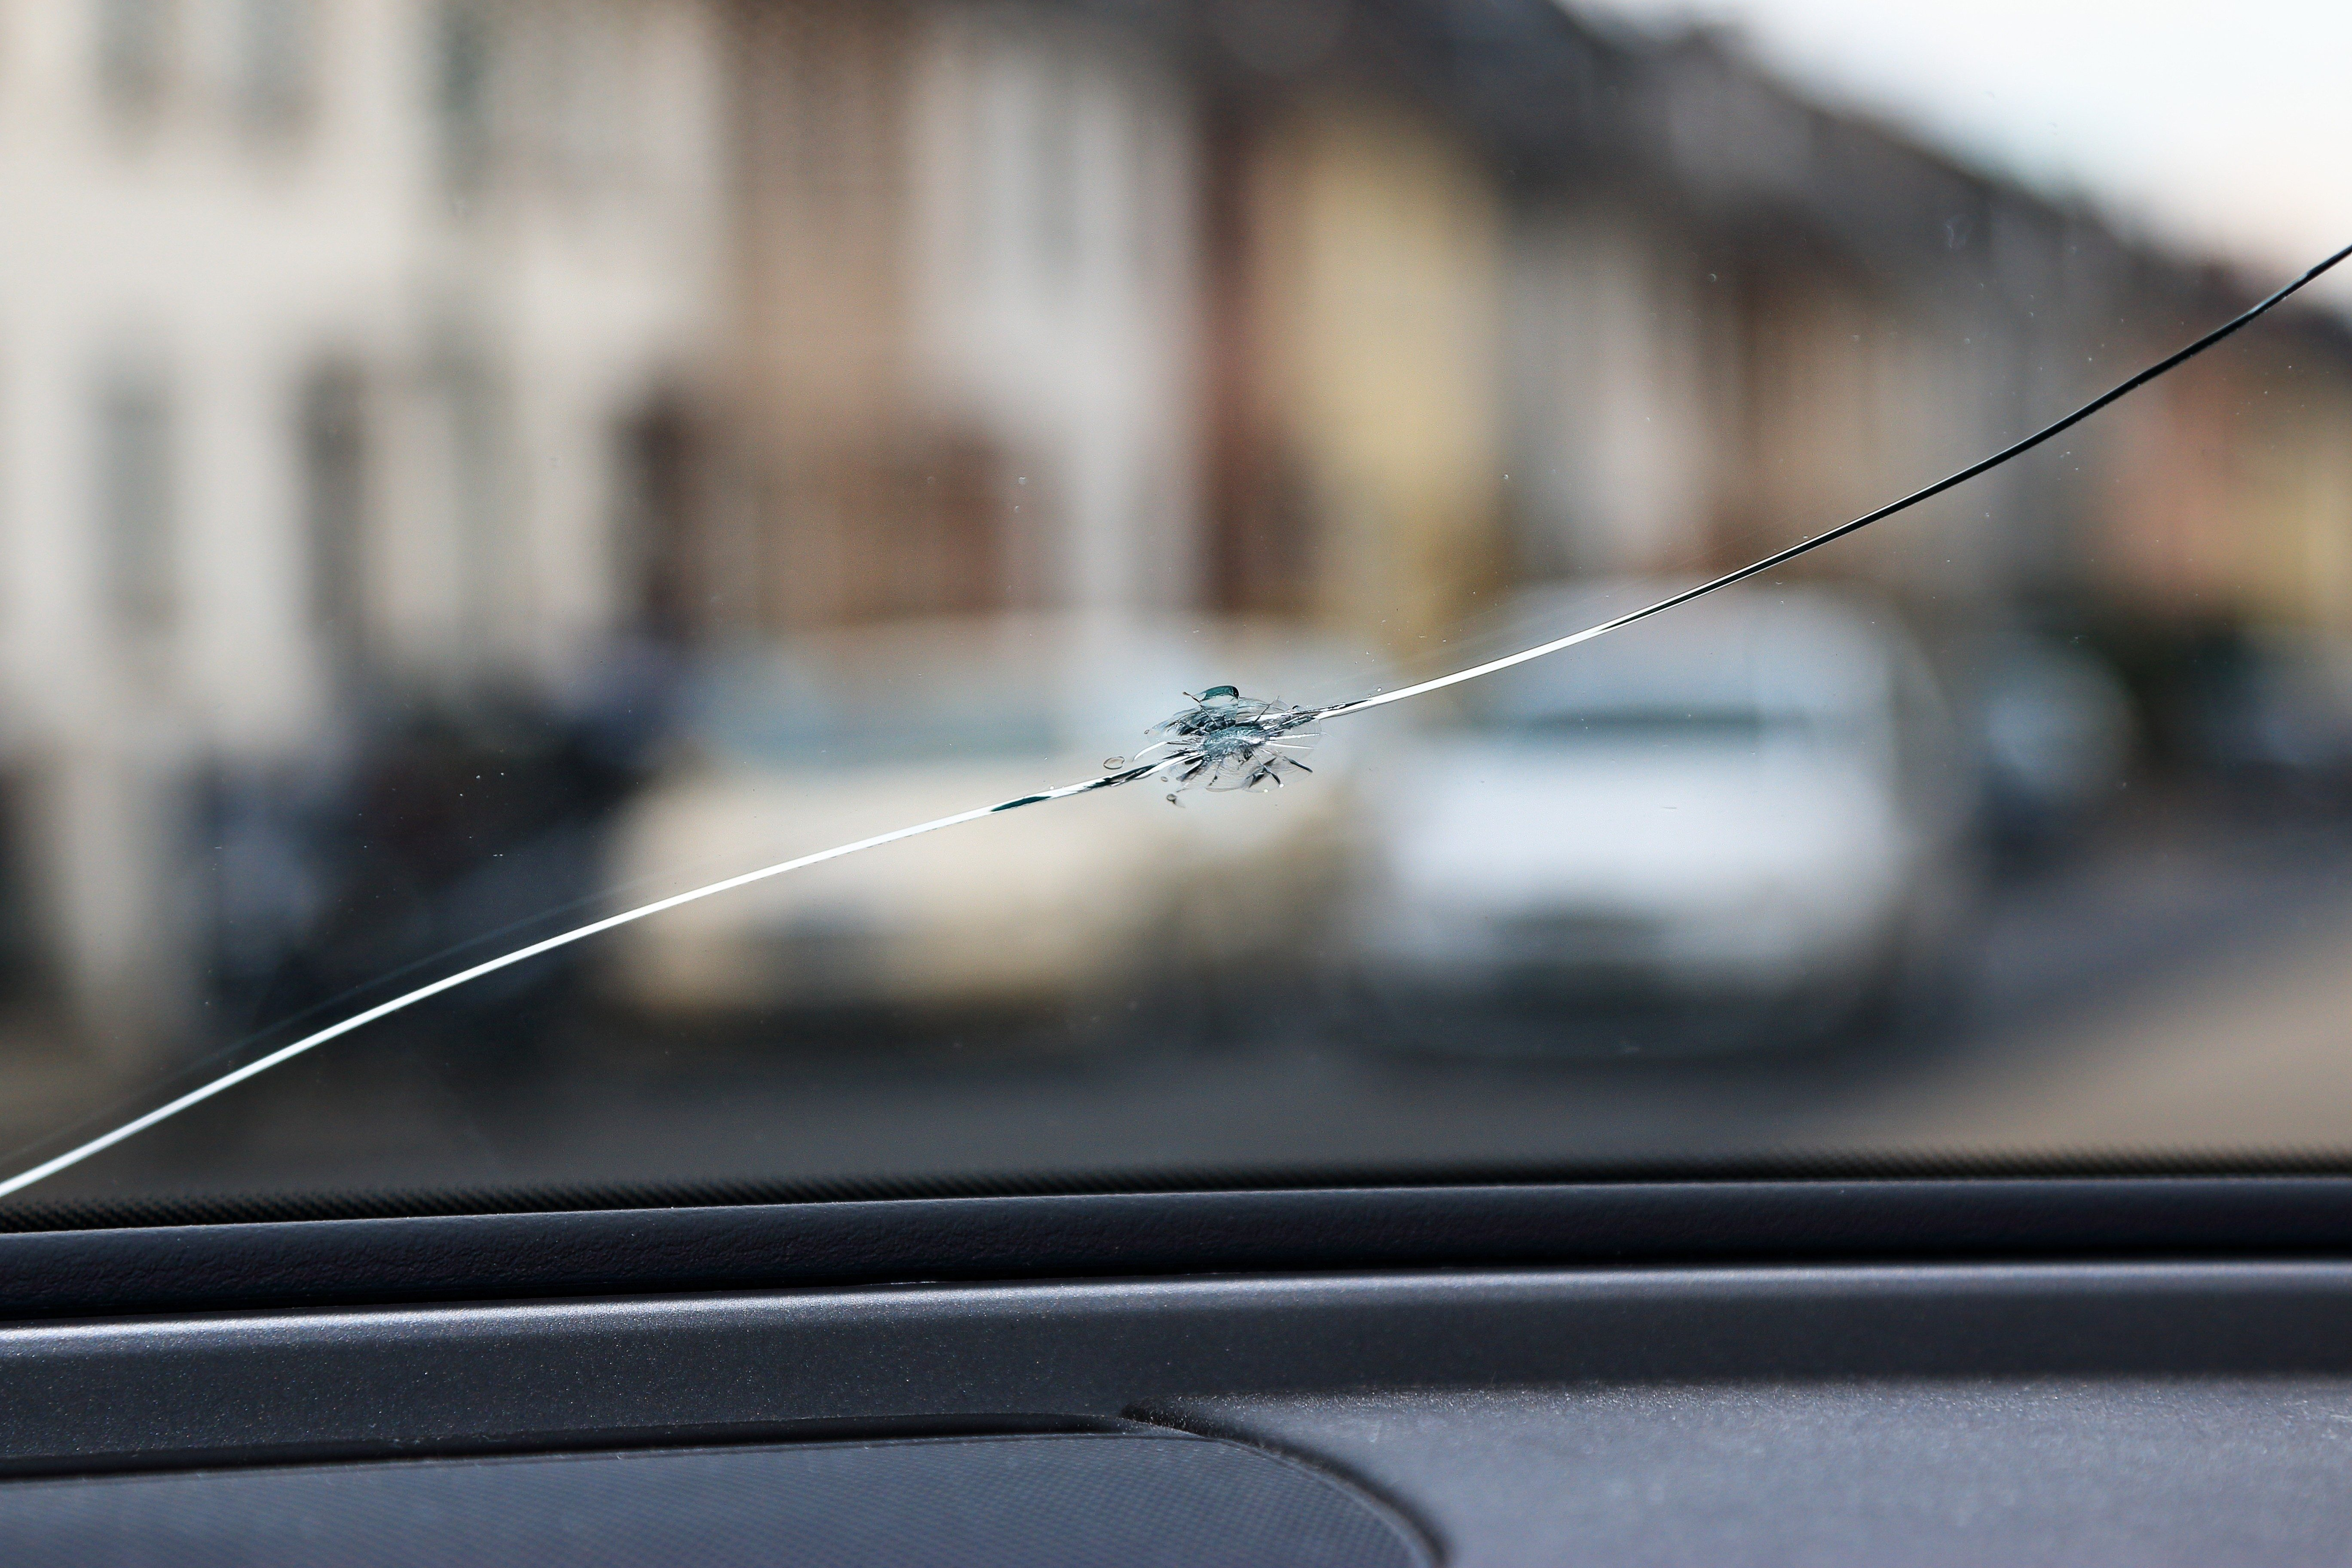 Crack of the windshield after rockfall